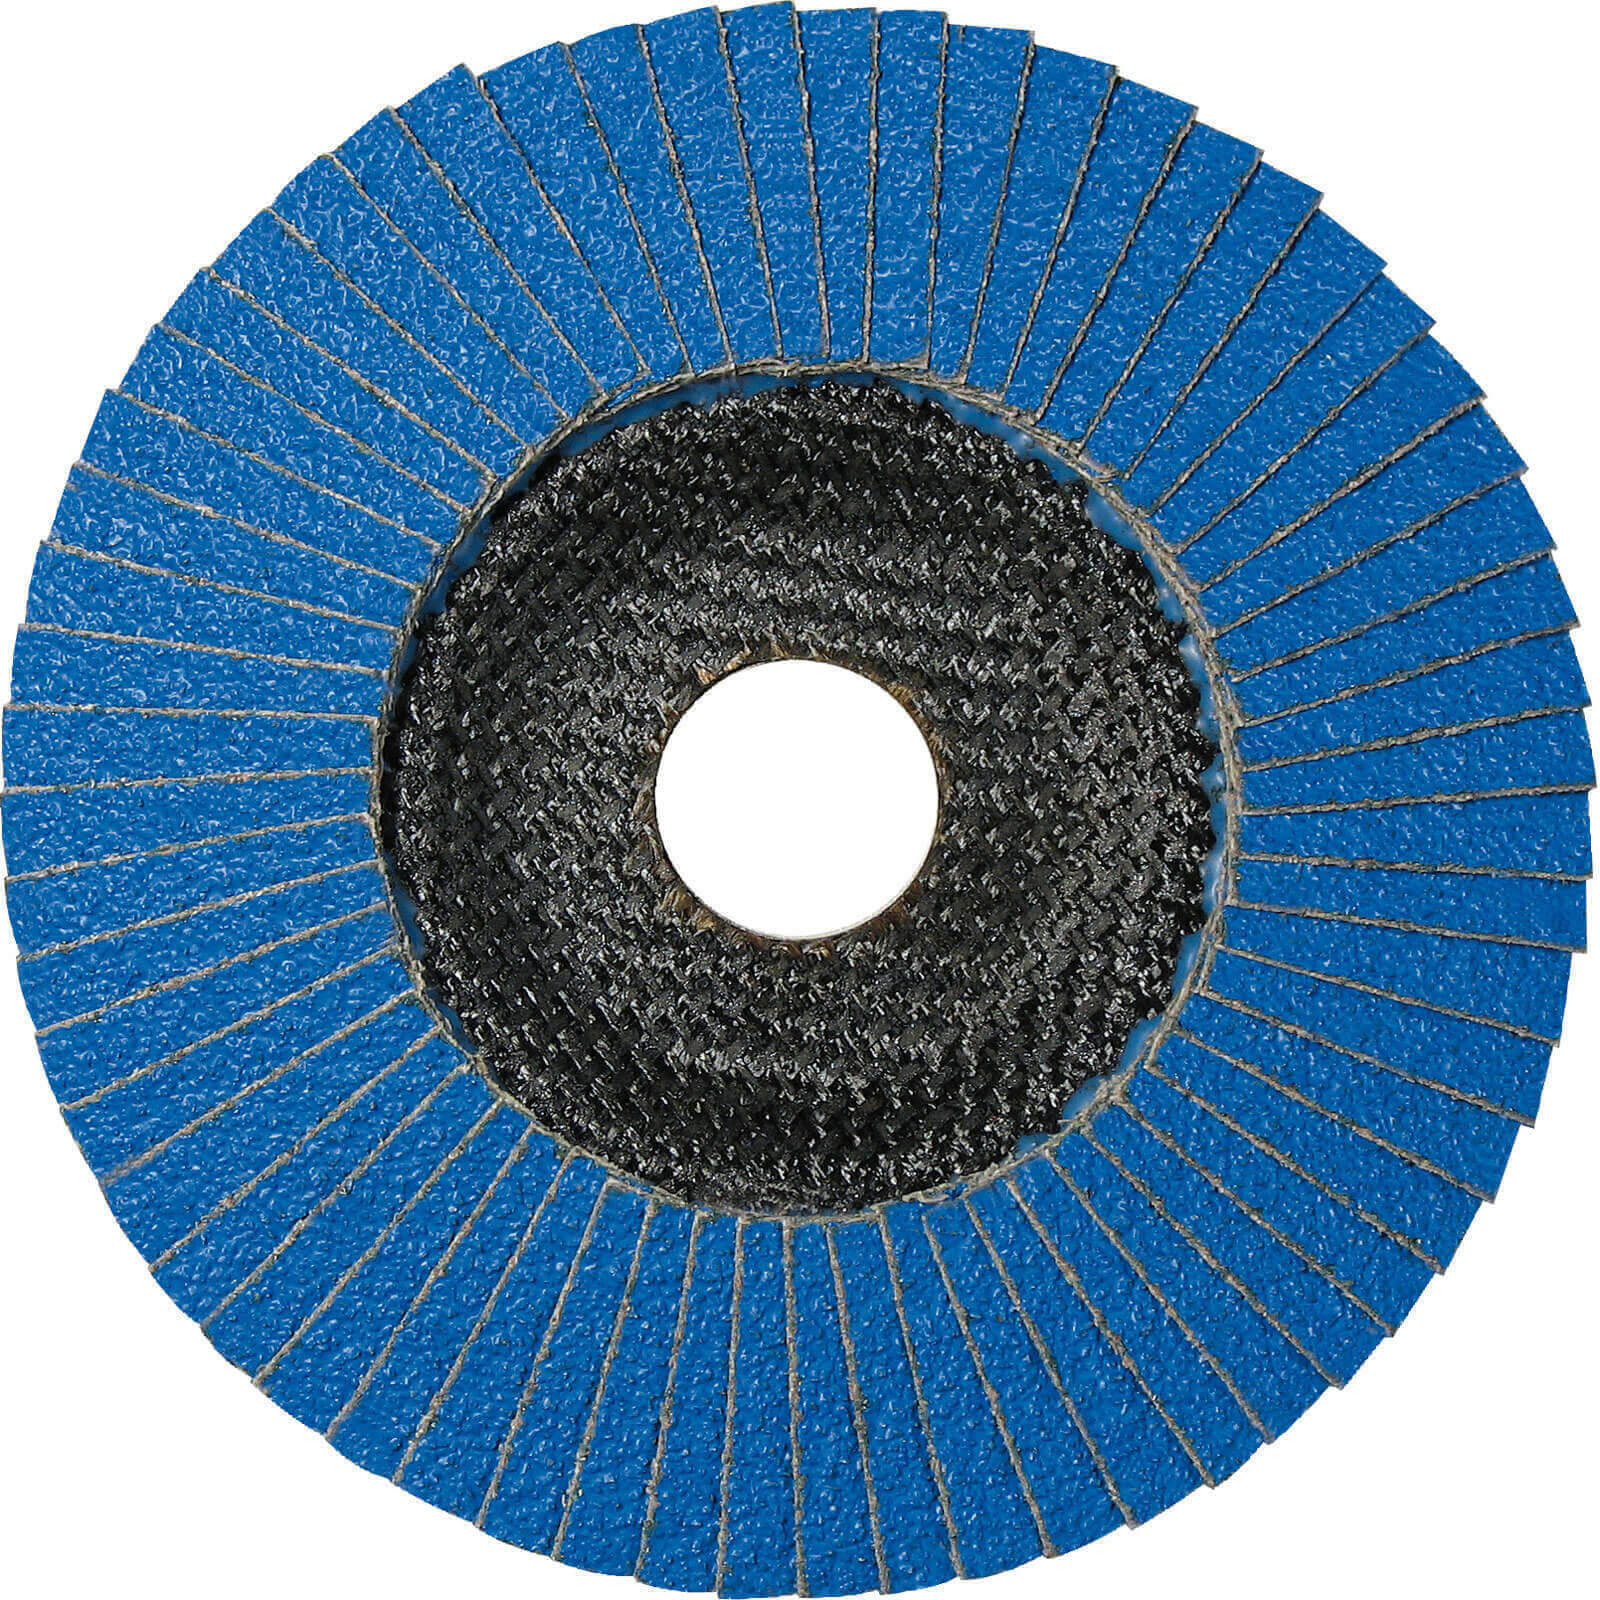 Dronco 115 x 22.2mm Bore Angle Grinder Zirconium Corundum Abrasive Disc 40G for All Steel